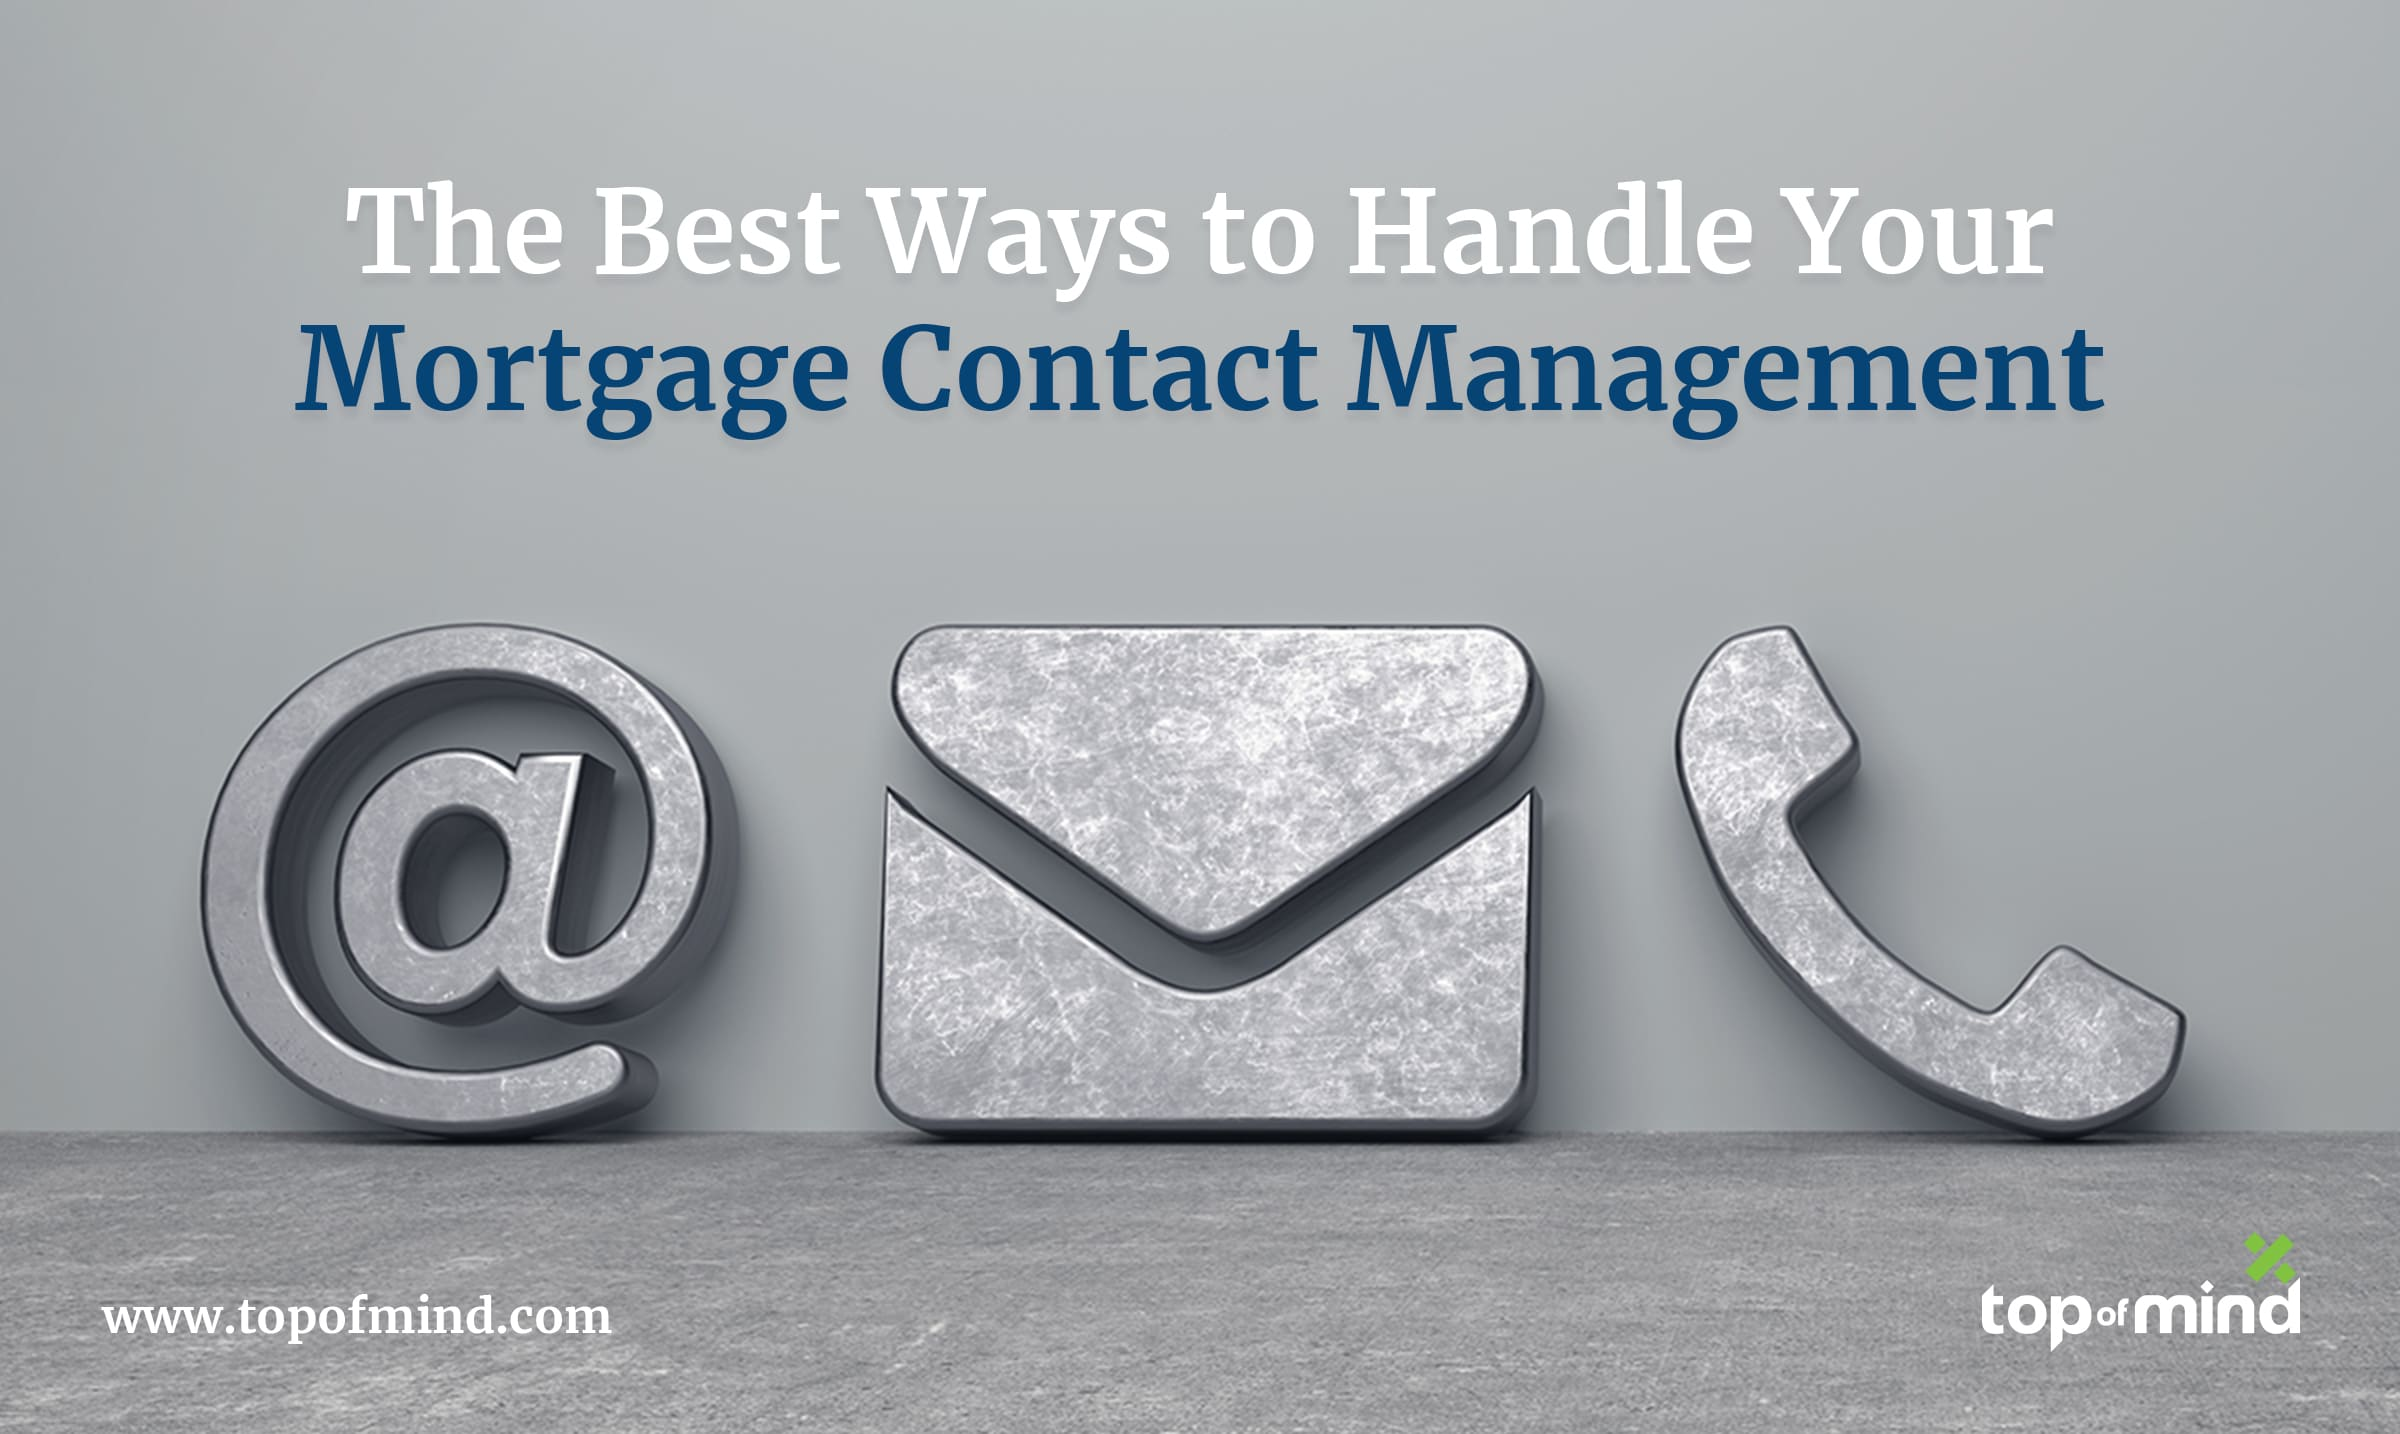 mortgage contact management